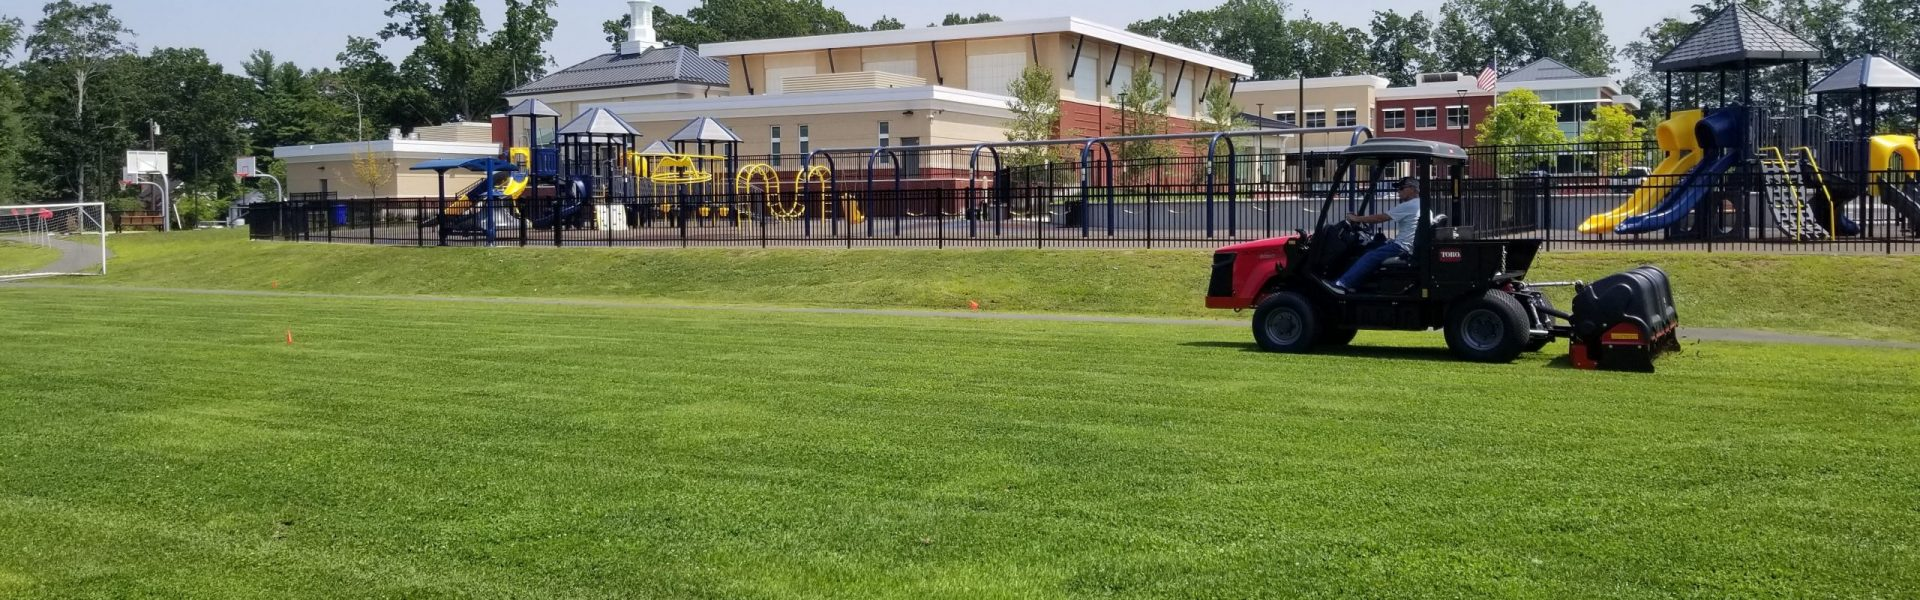 athletic fields on school grounds with tractor